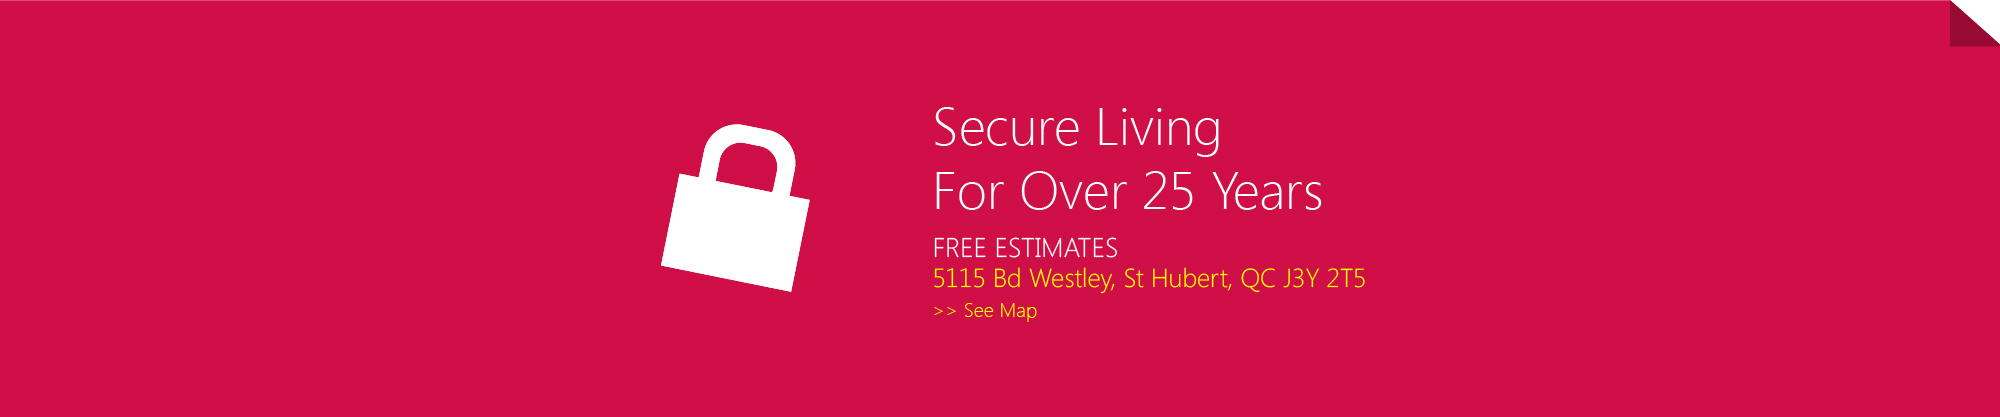 Secure living for over 25 years - Free estimates